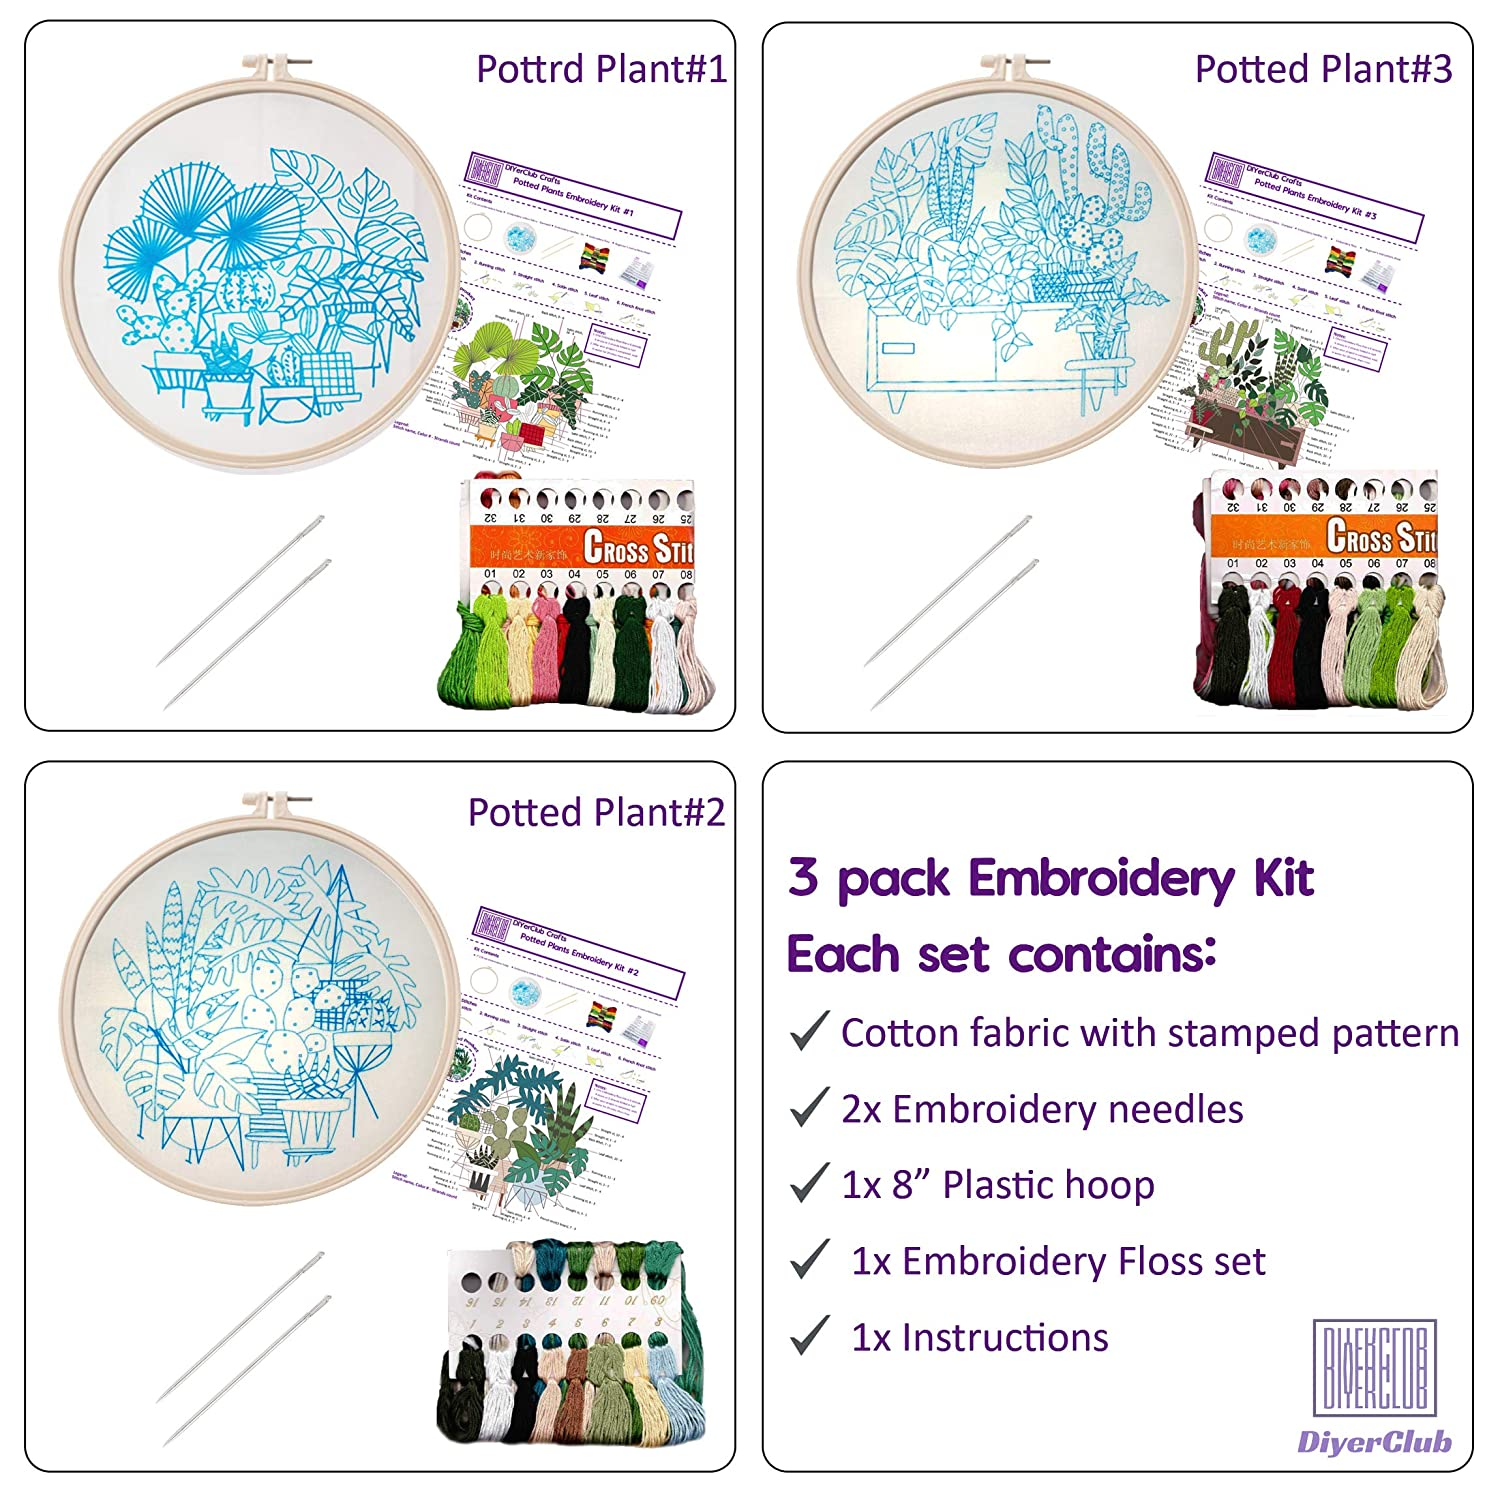 6 Needles 3 Pack Embroidery Kit for Beginners with Pattern and Instructions Needlepoint Starter Kits for Adults 3 Instructions by DiyerClub Crafts 3 Plastic Hoops Embroidery Set 3 Stamped Cloth